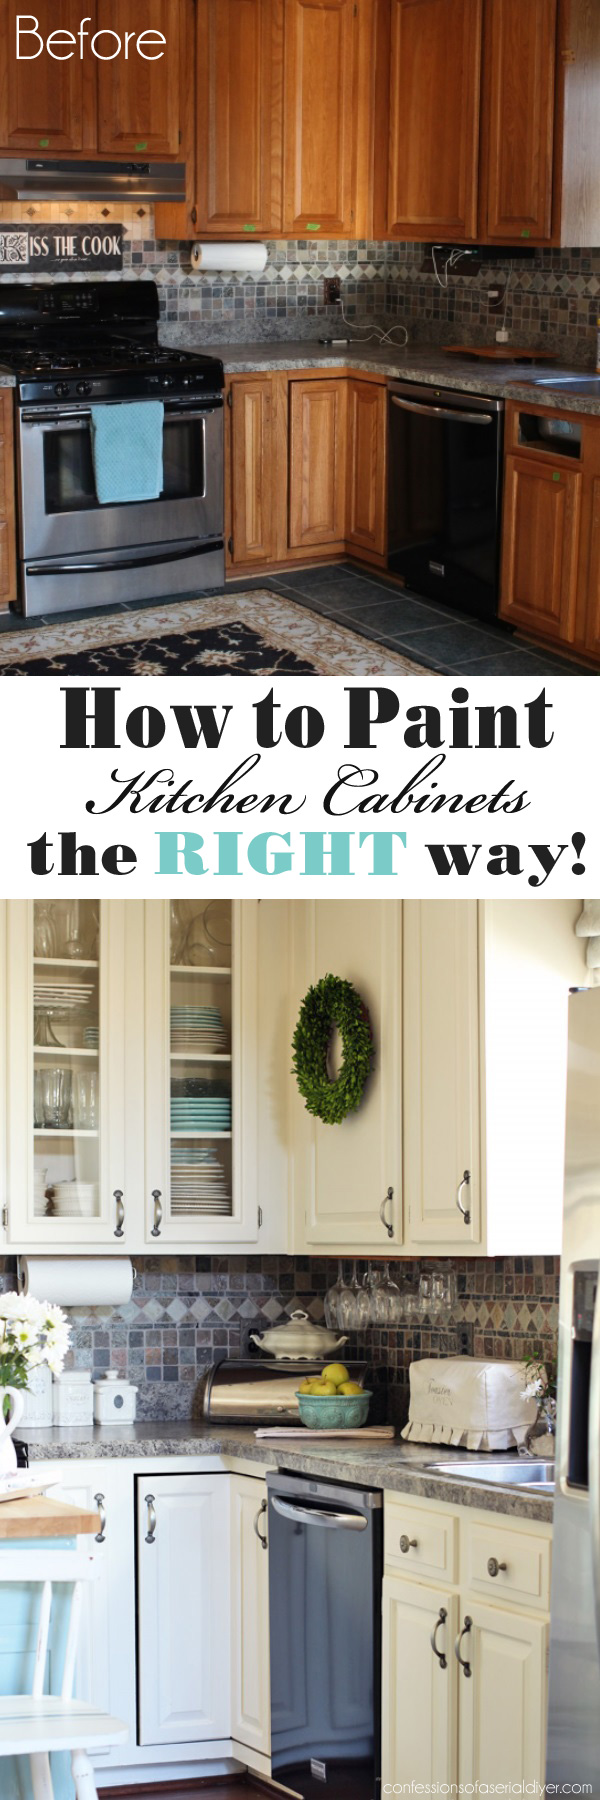 Diy Painted Kitchen Cabinets Before And After how to paint kitchen cabinets (a step-by-step guide) | confessions